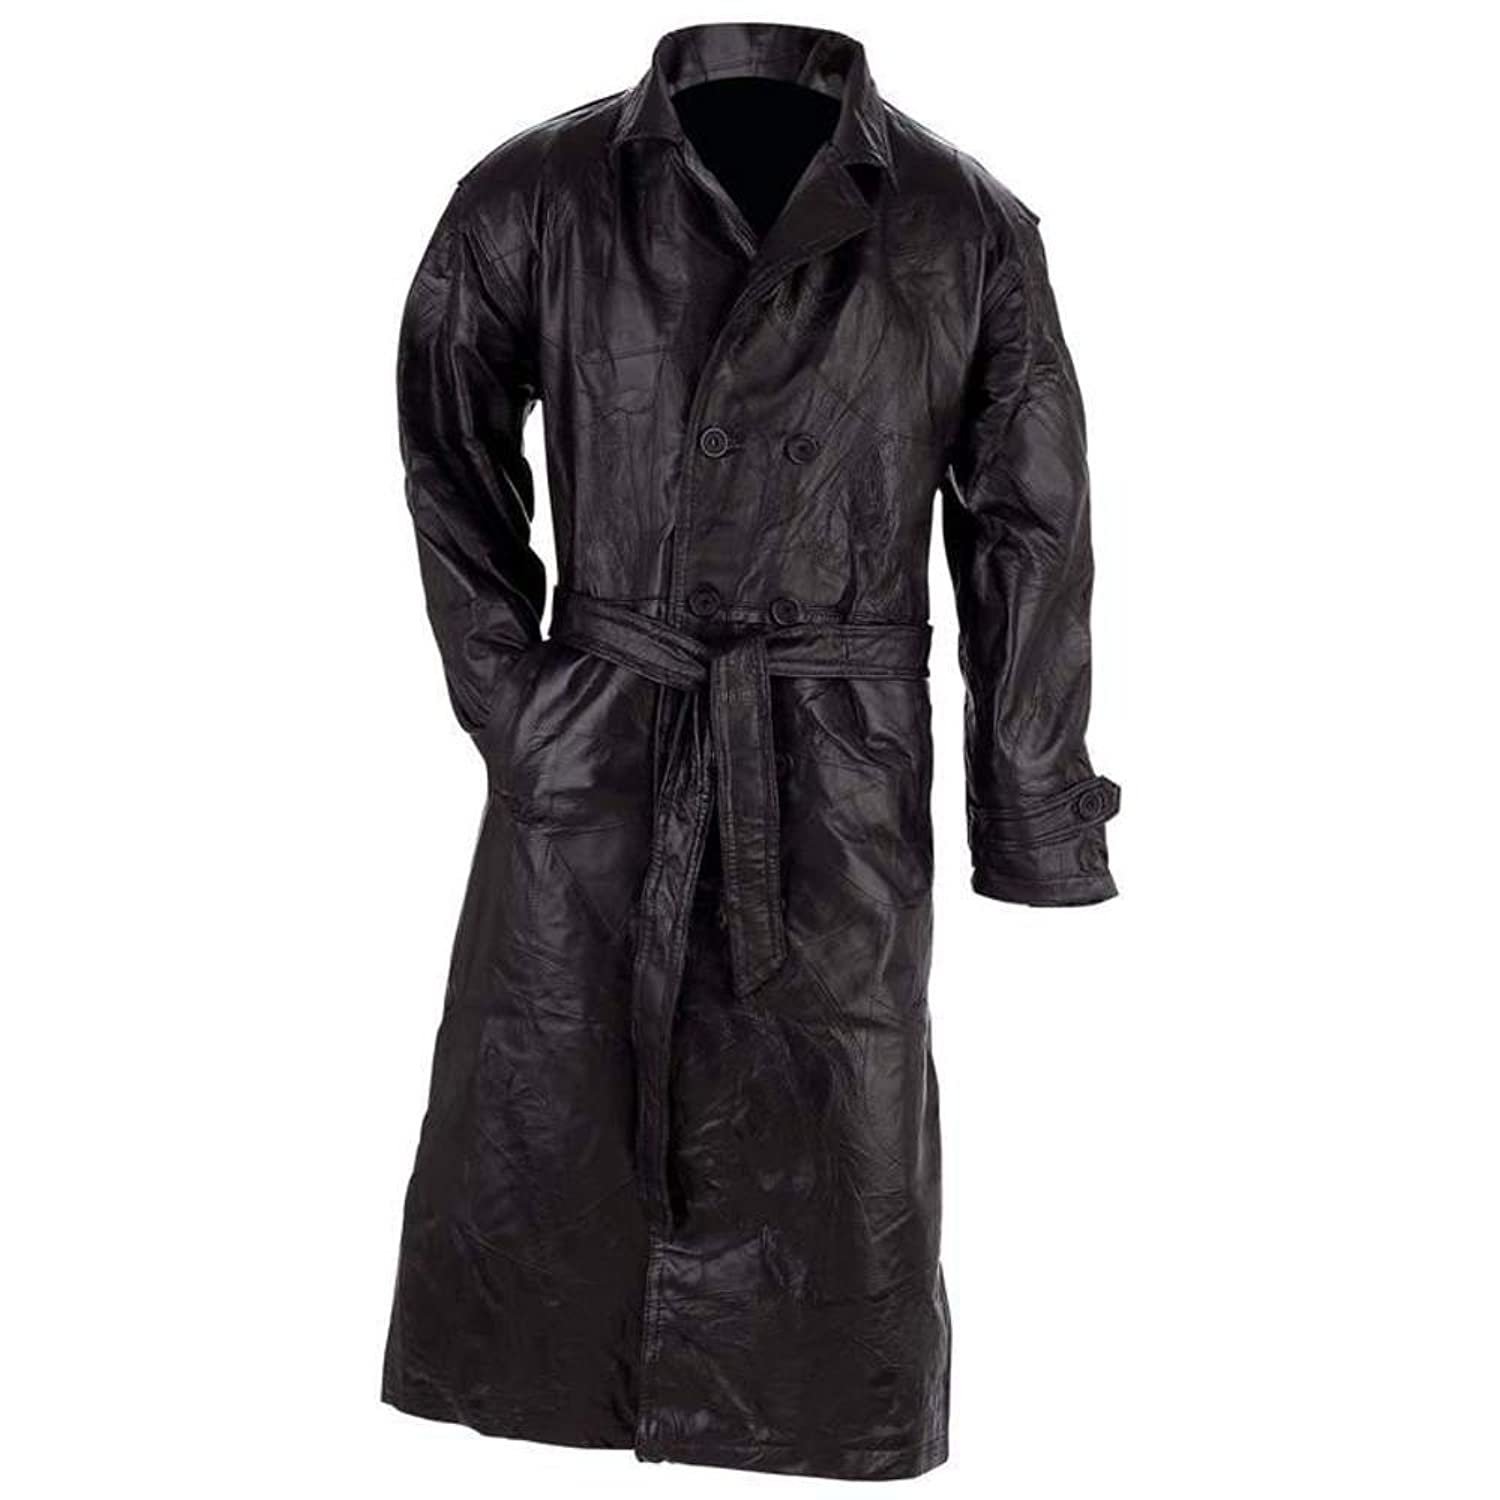 Genuine Leather Trench Coat Style Black Large At Amazon Mens Clothing Store Leather Outerwear Jackets